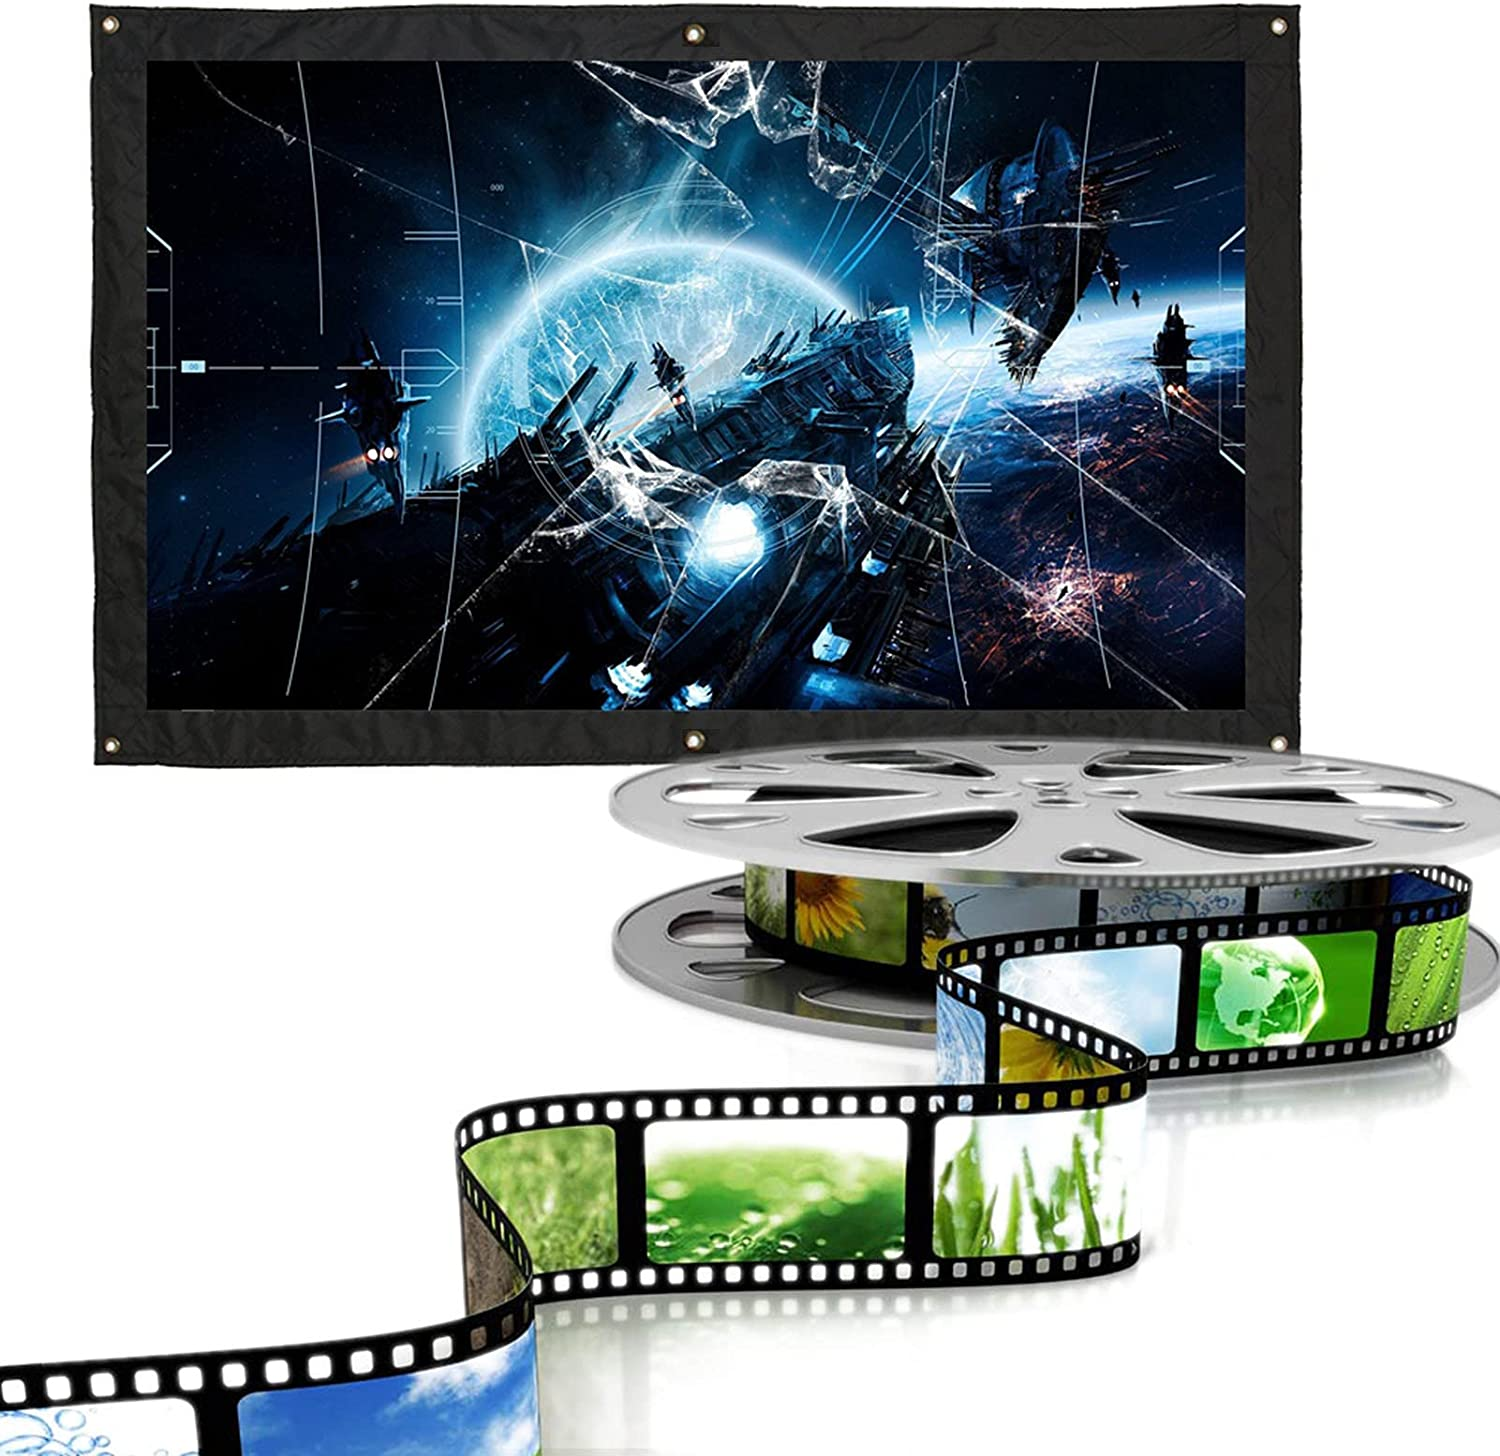 16:9 Indoor Outdoor Projection Screen Portable 60/72/100/120/150 inch Home Theater Movie Projection Screen Anti-Crease Curtain Video Projection Screens for Home Cinema, Meeting( 120 inch)